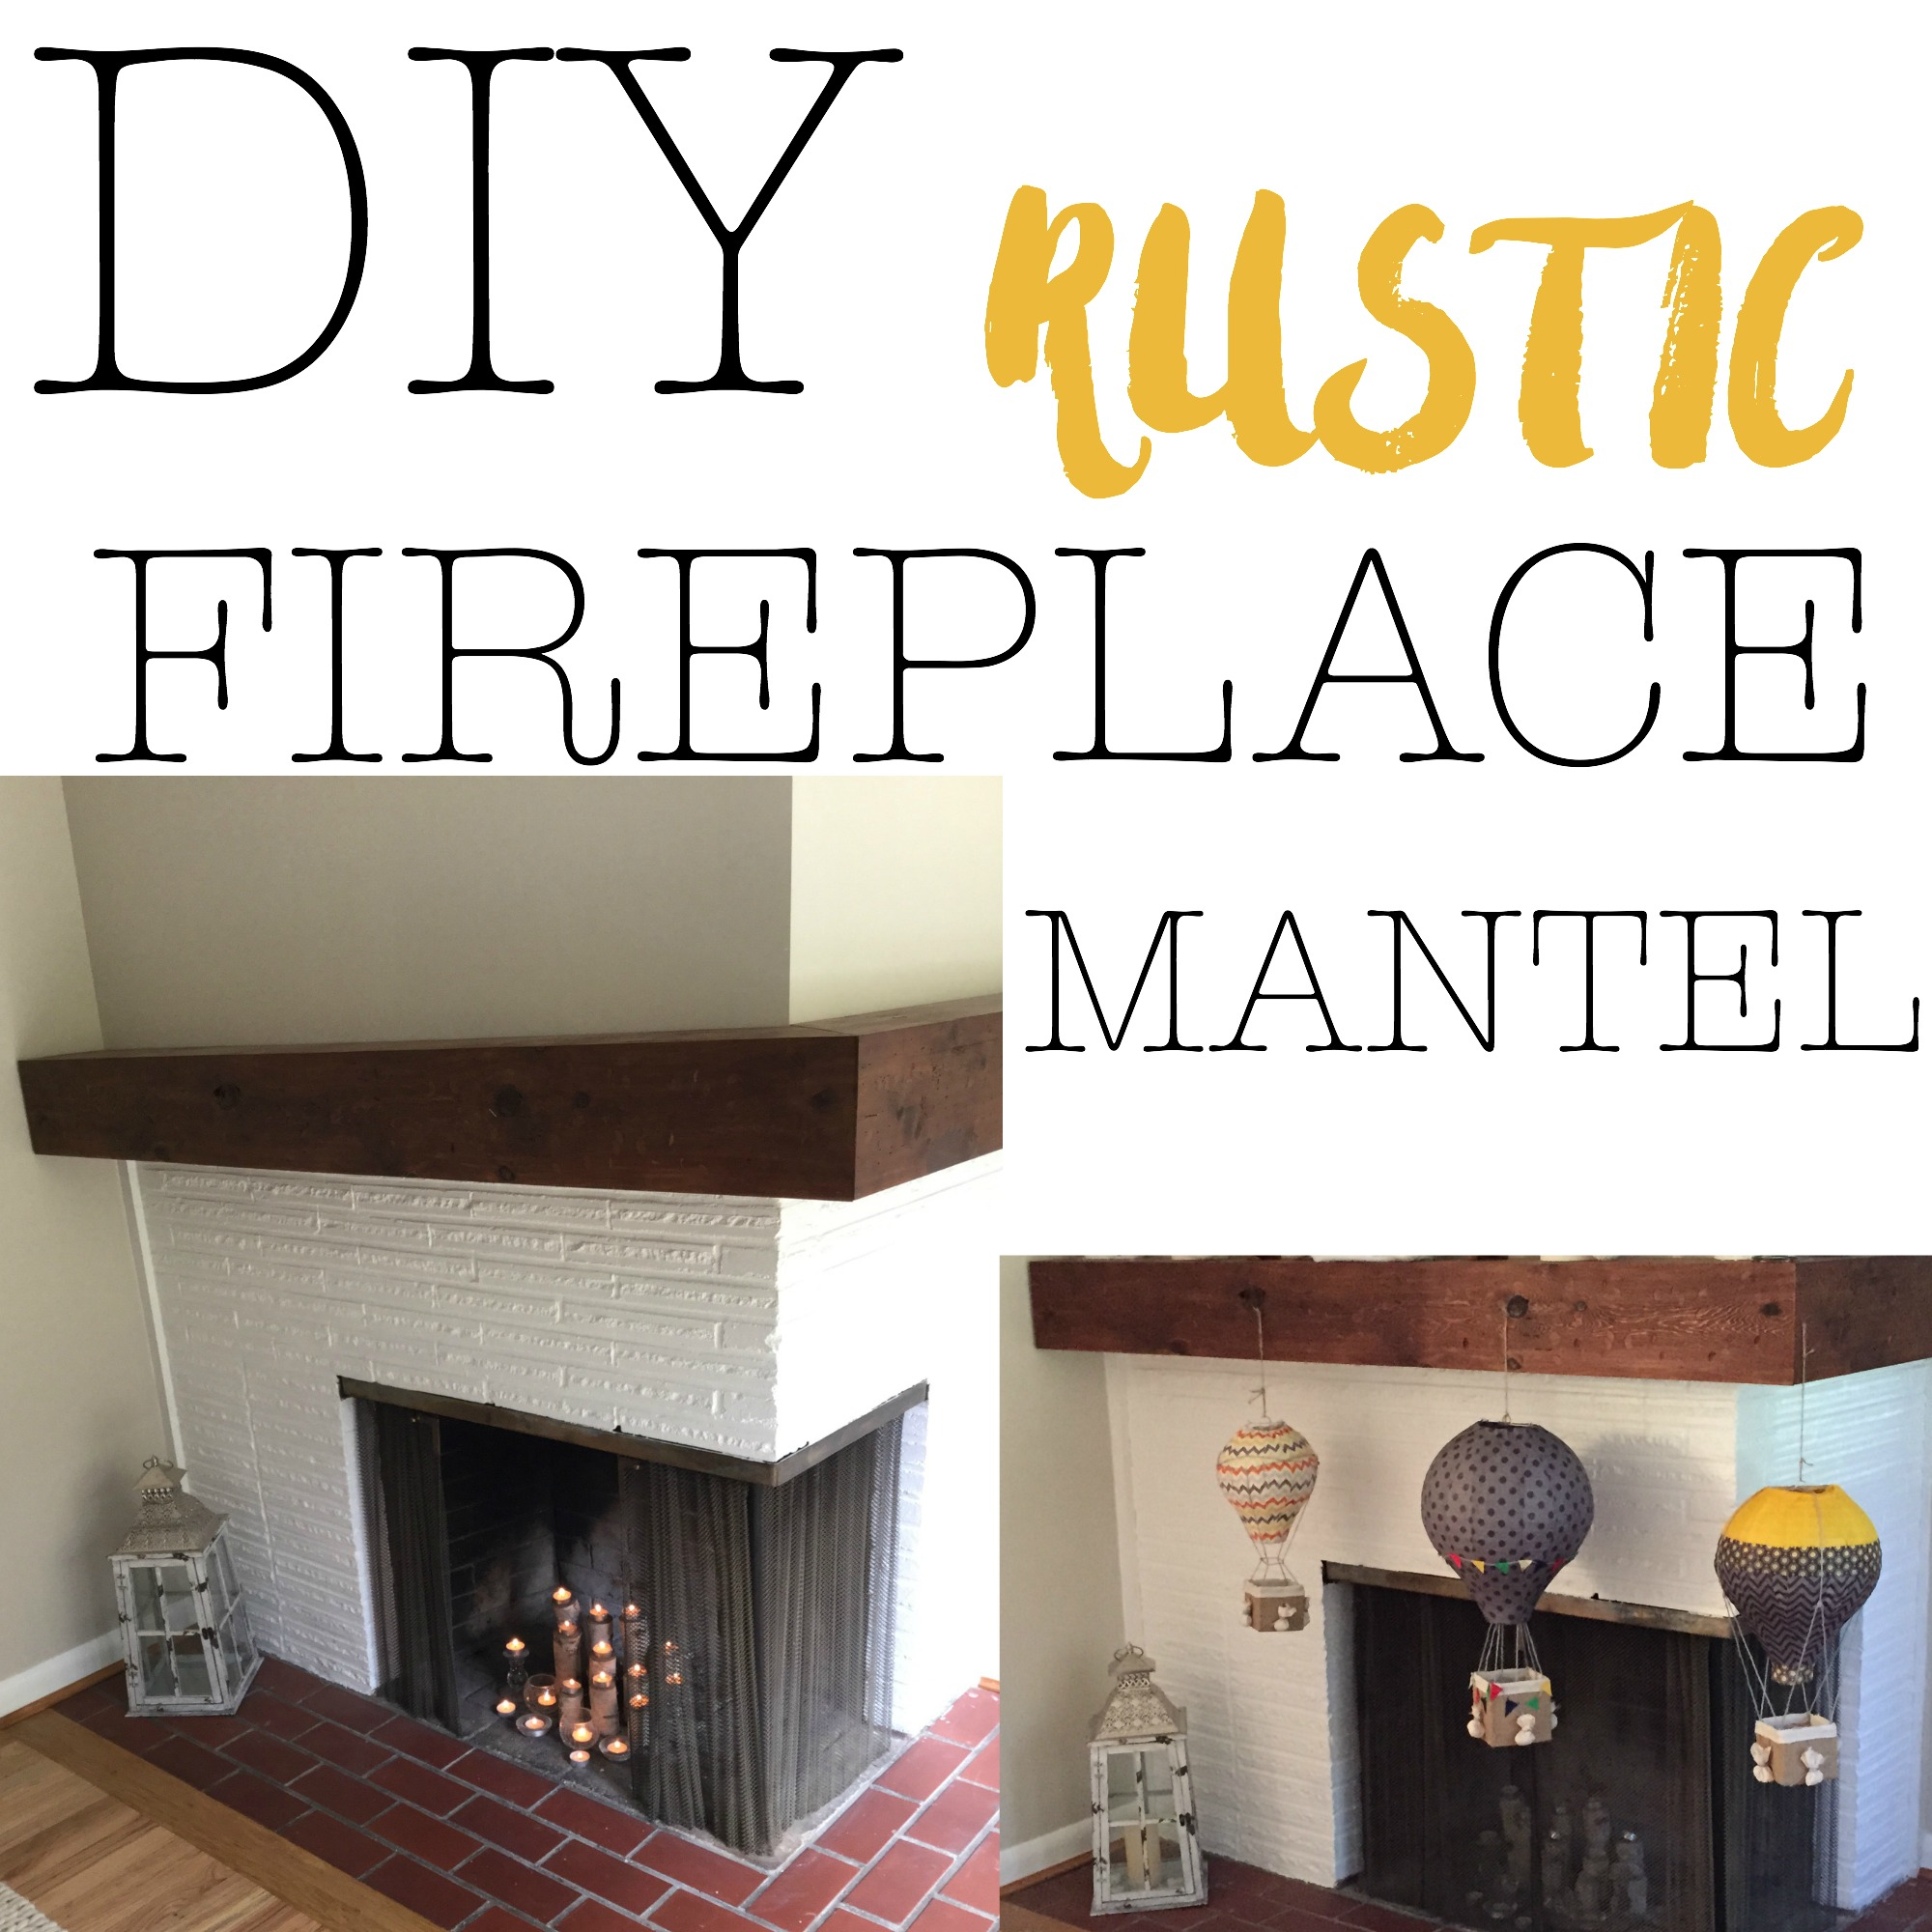 hardwoods read wood kettle shelf fireplace diy mantels mantel smith rustic moraine shelves